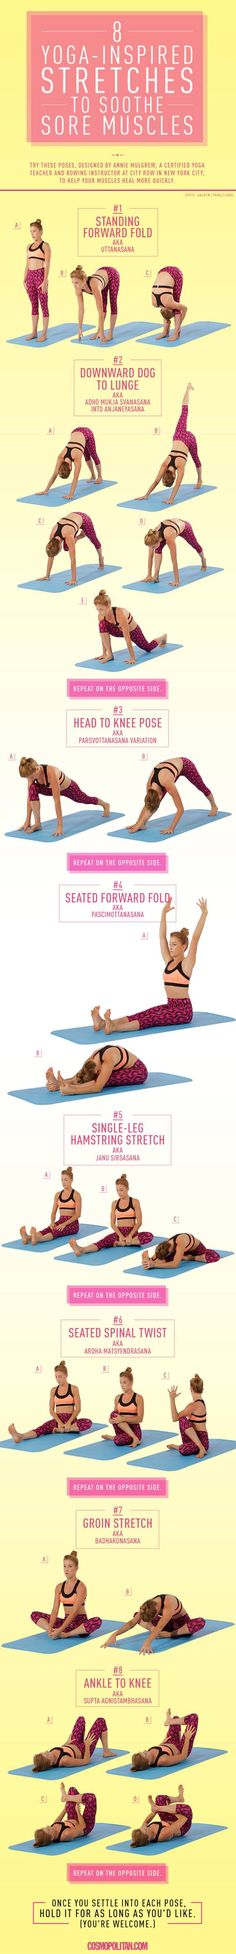 Say hello to #Yoga for sore muscles.